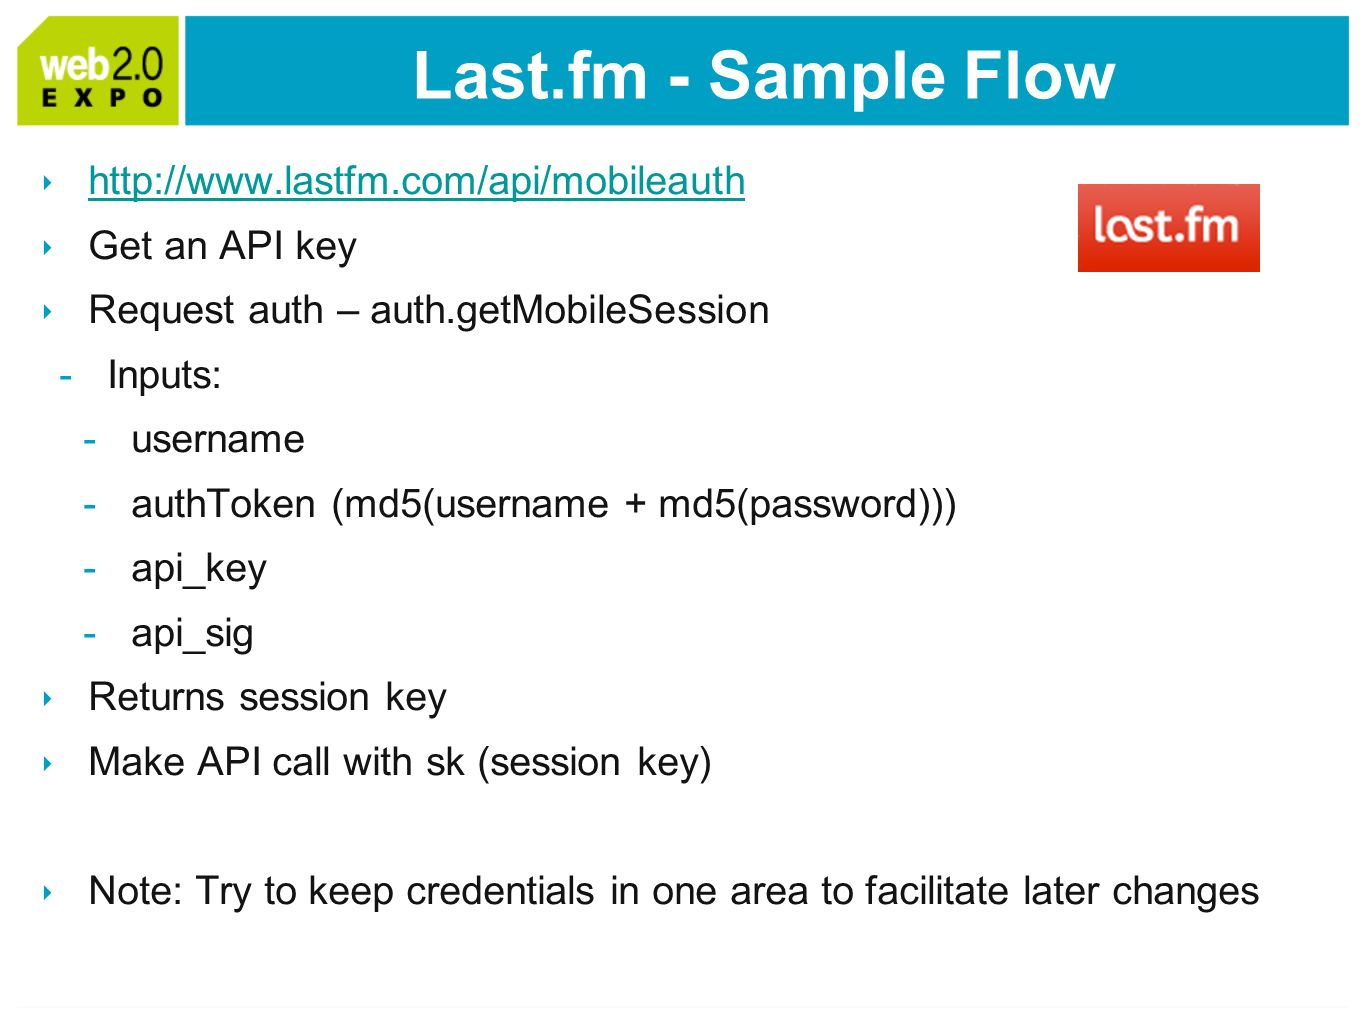 Last.fm - Sample Flow http://www.lastfm.com/api/mobileauth Get an API key Request auth – auth.getMobileSession -Inputs: -username -authToken (md5(username + md5(password))) -api_key -api_sig Returns session key Make API call with sk (session key) Note: Try to keep credentials in one area to facilitate later changes